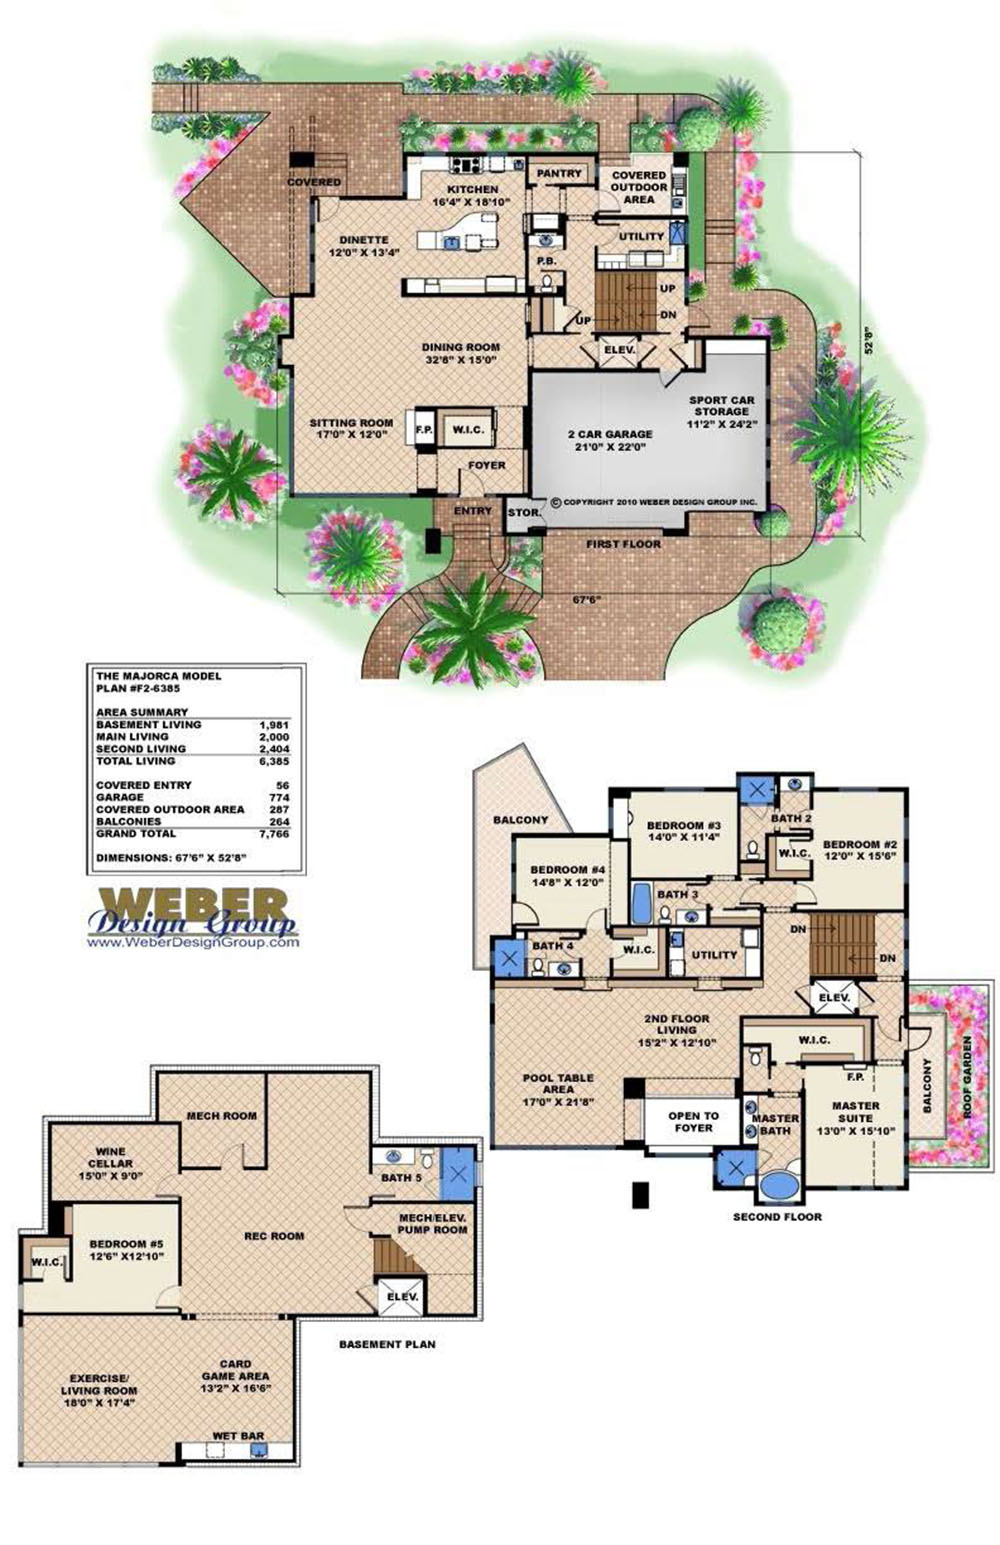 Majorca House Plan  sc 1 st  Weber Design Group & House Plans with Basement - Homes with Full u0026 Walkout Basements